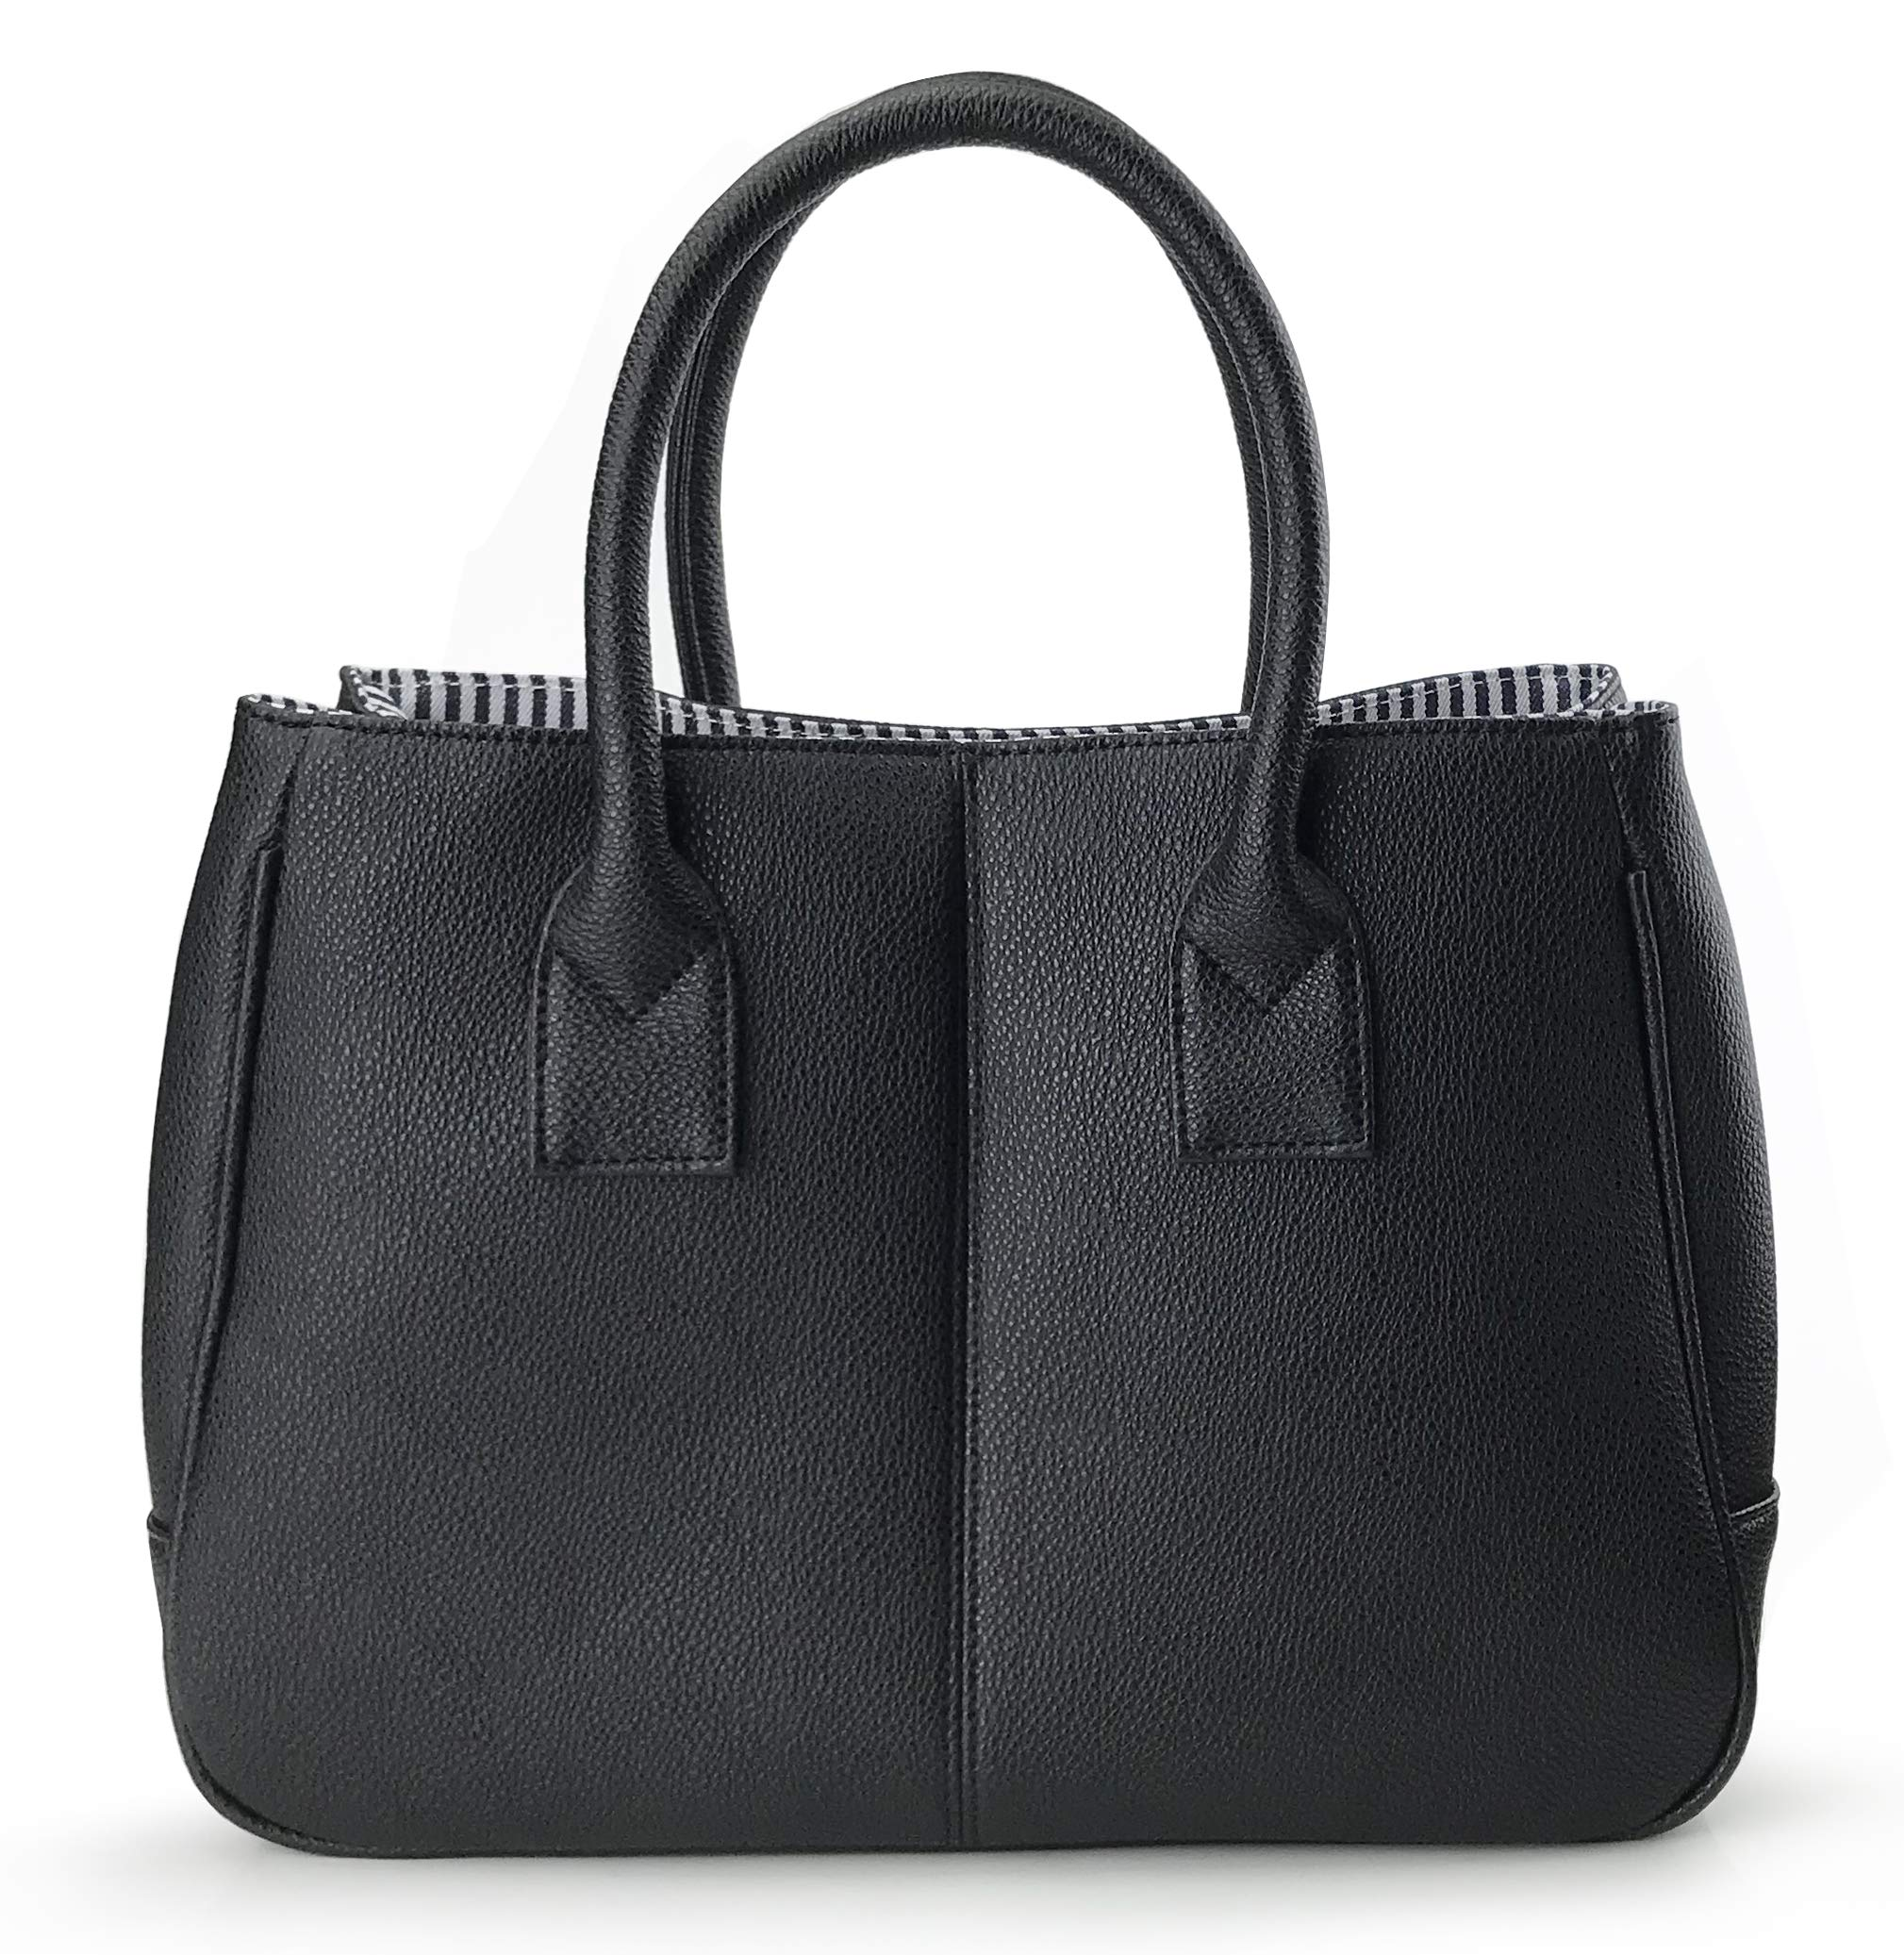 Hoxis Classical Office Lady Minimalist Pebbled Faux Leather Handbag Tote/Magnetic Snap Purse